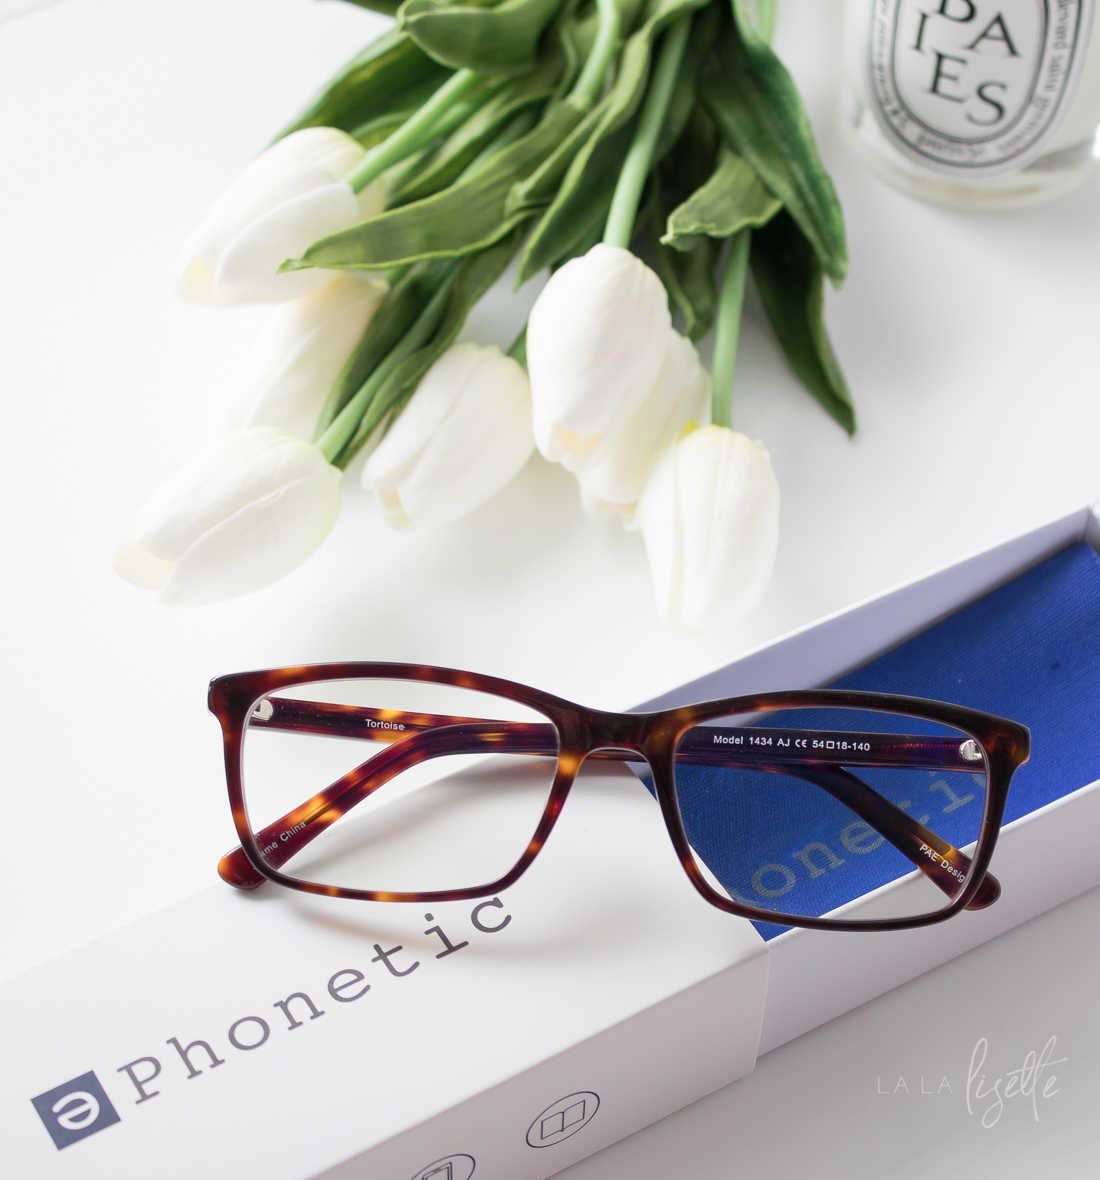 Phonetic Eyewear Glasses for electronics